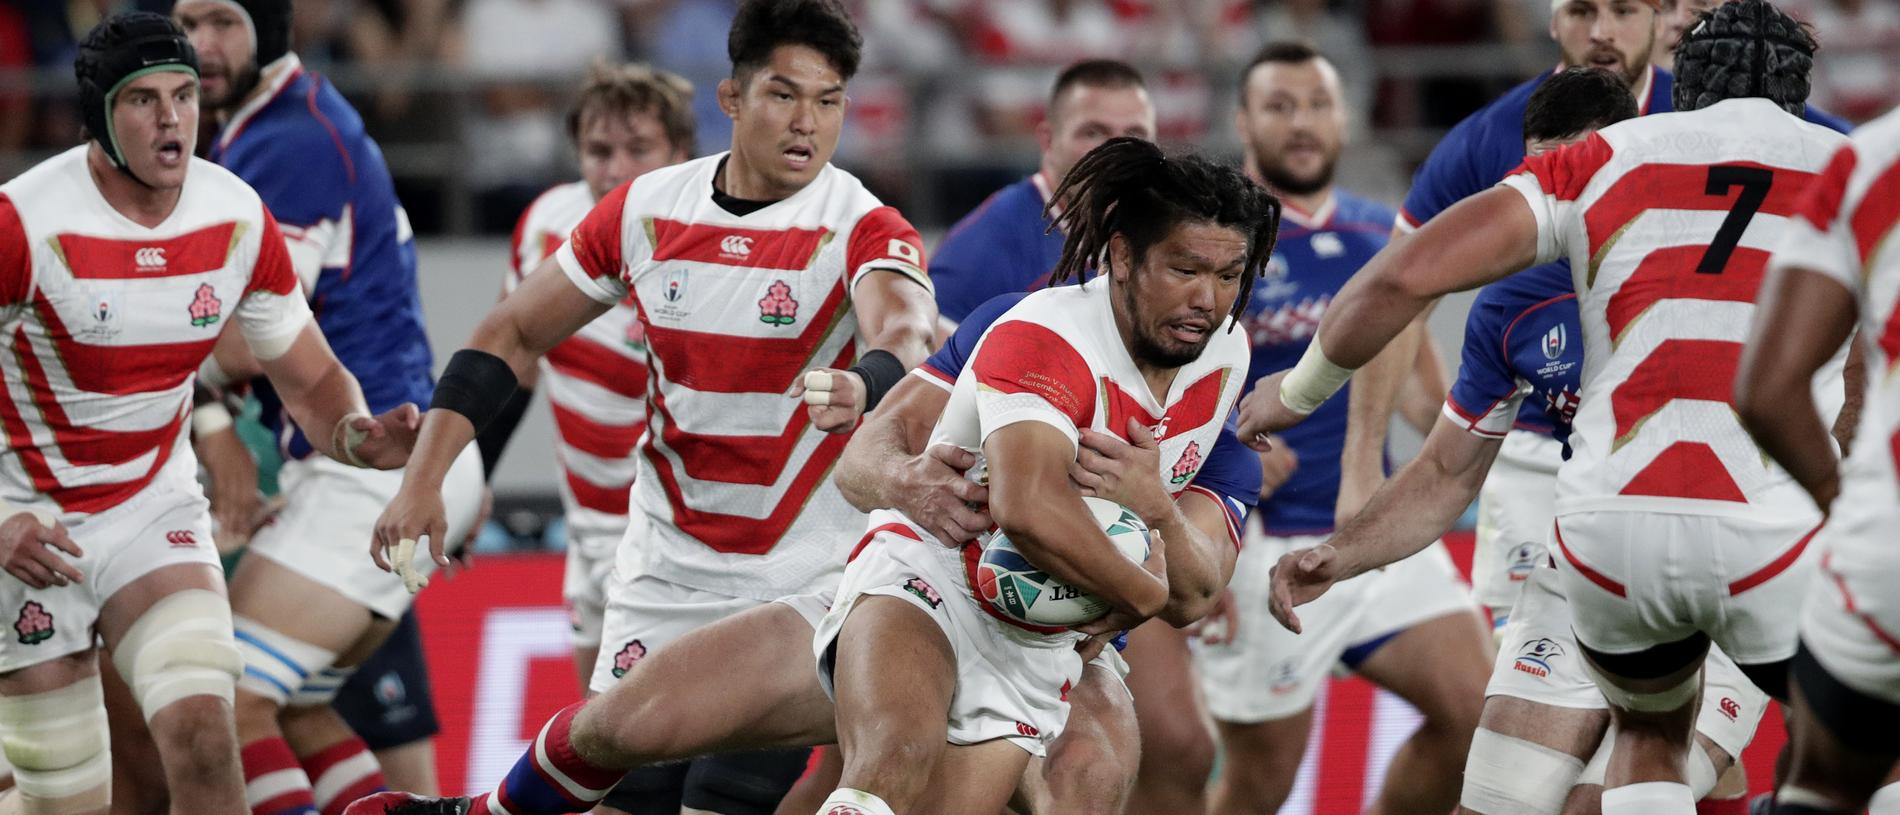 Japan's Shota Horie, centre, is tackled by a Russian player during the Rugby World Cup Pool A game at Tokyo Stadium between Russia and Japan in Tokyo, Japan, Friday, Sept. 20, 2019. (AP Photo/Jae Hong)